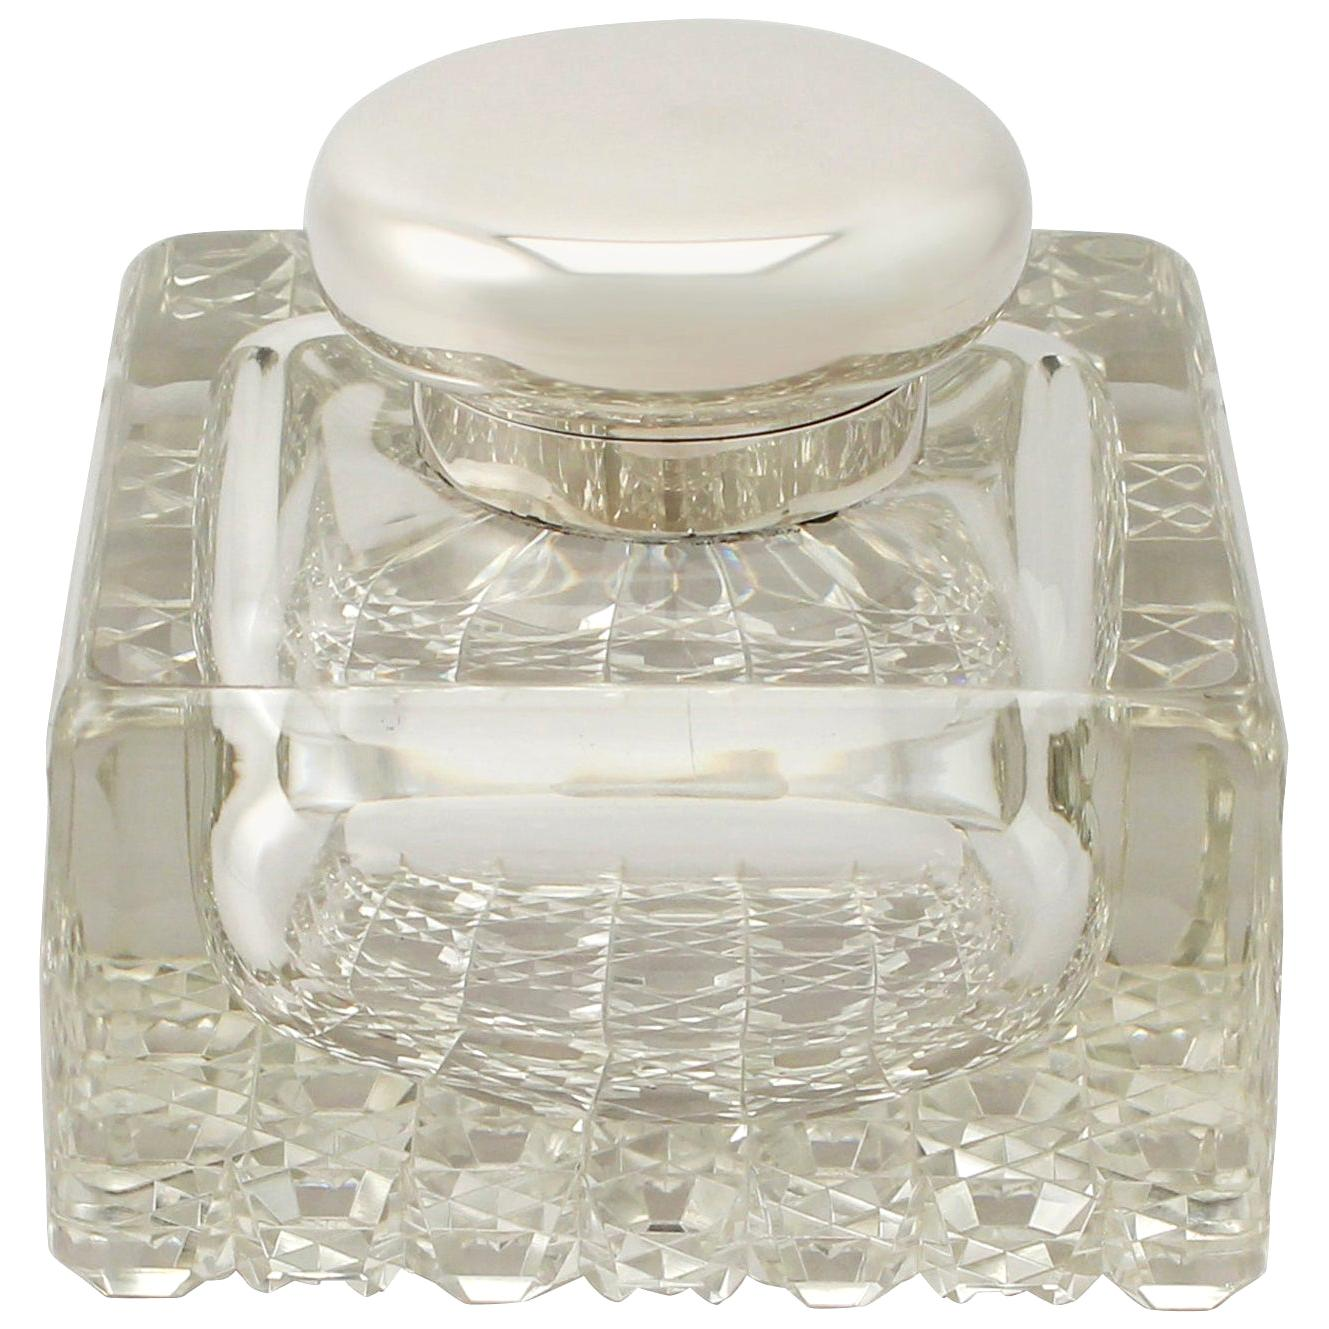 Antique George V Cut Glass and Sterling Silver Desk Inkwell